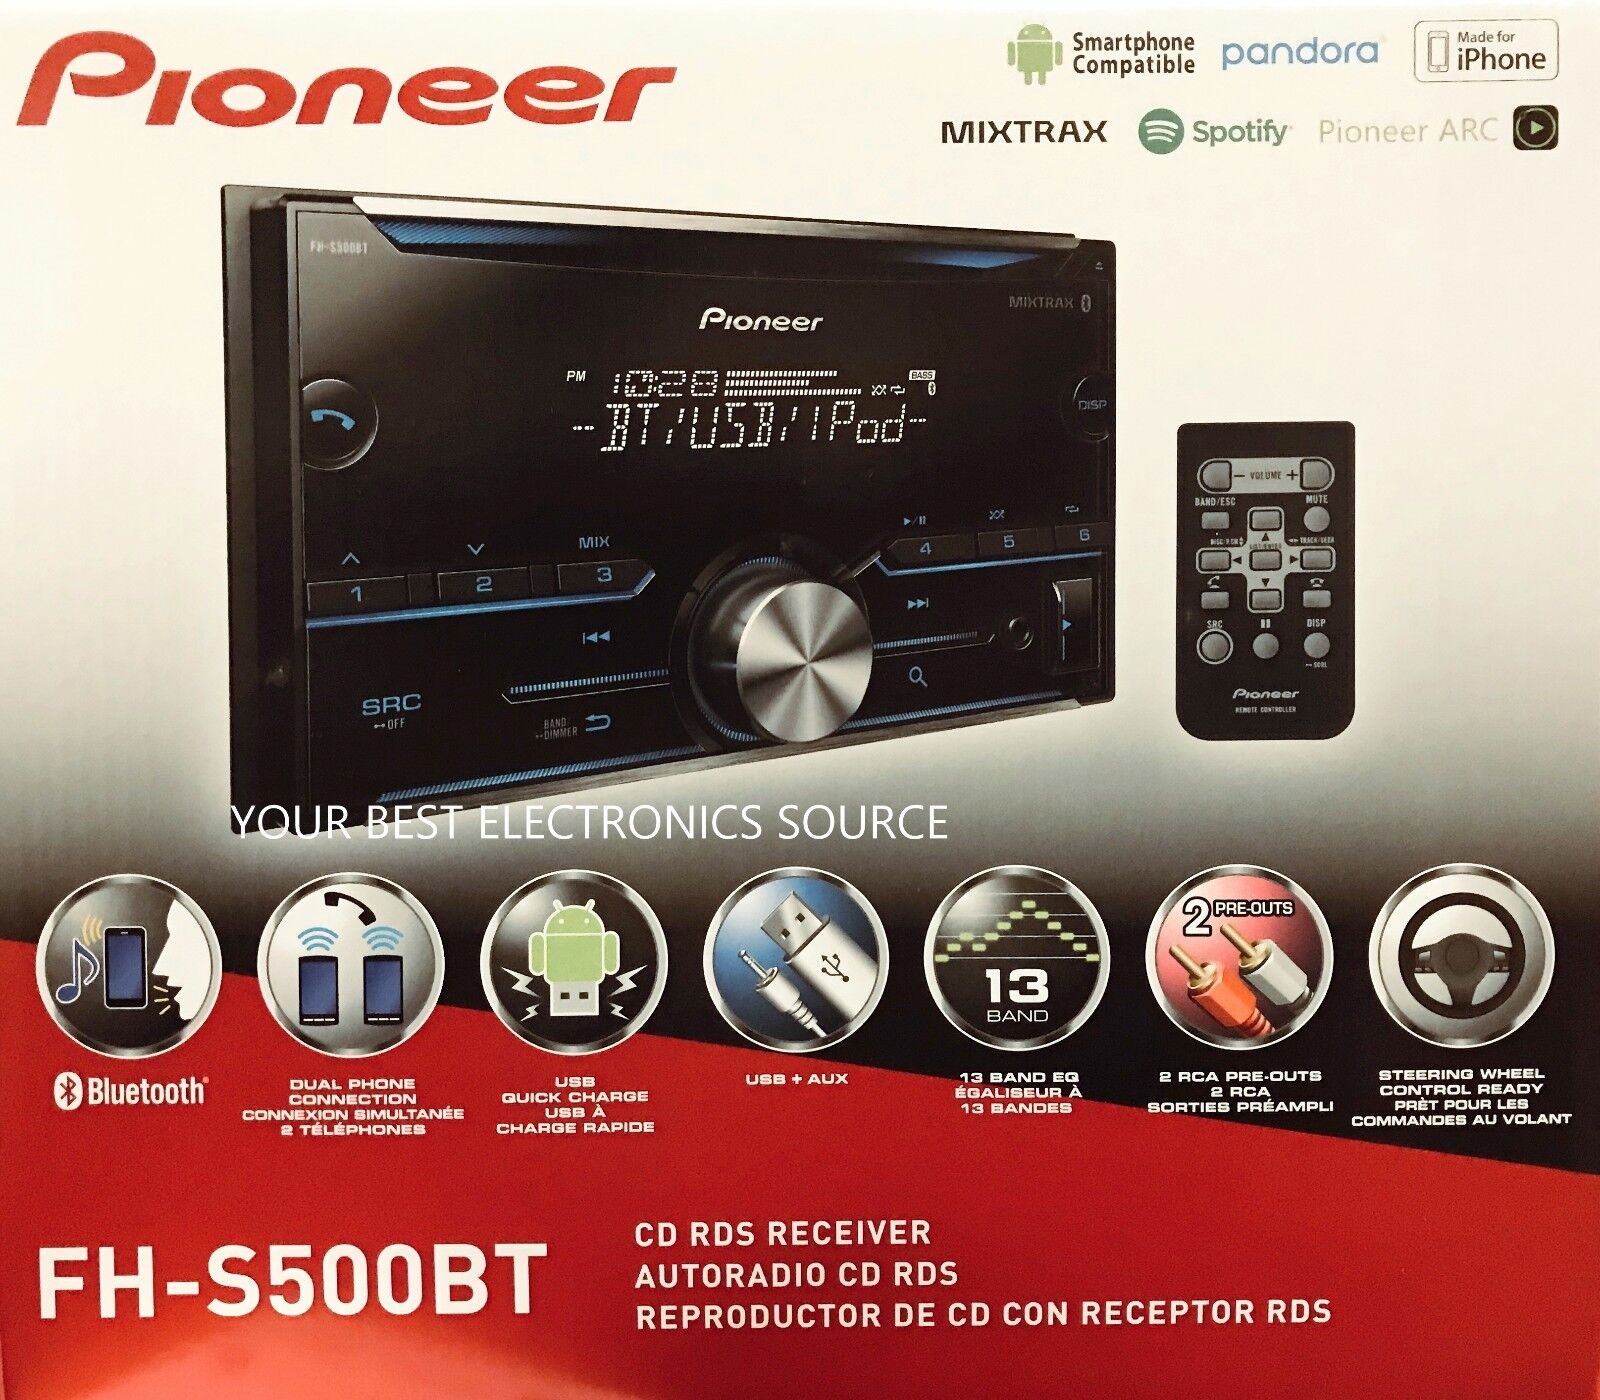 $93.50 - NEW Pioneer FH-S500BT Double-DIN Car Audio Stereo w/ Bluetooth